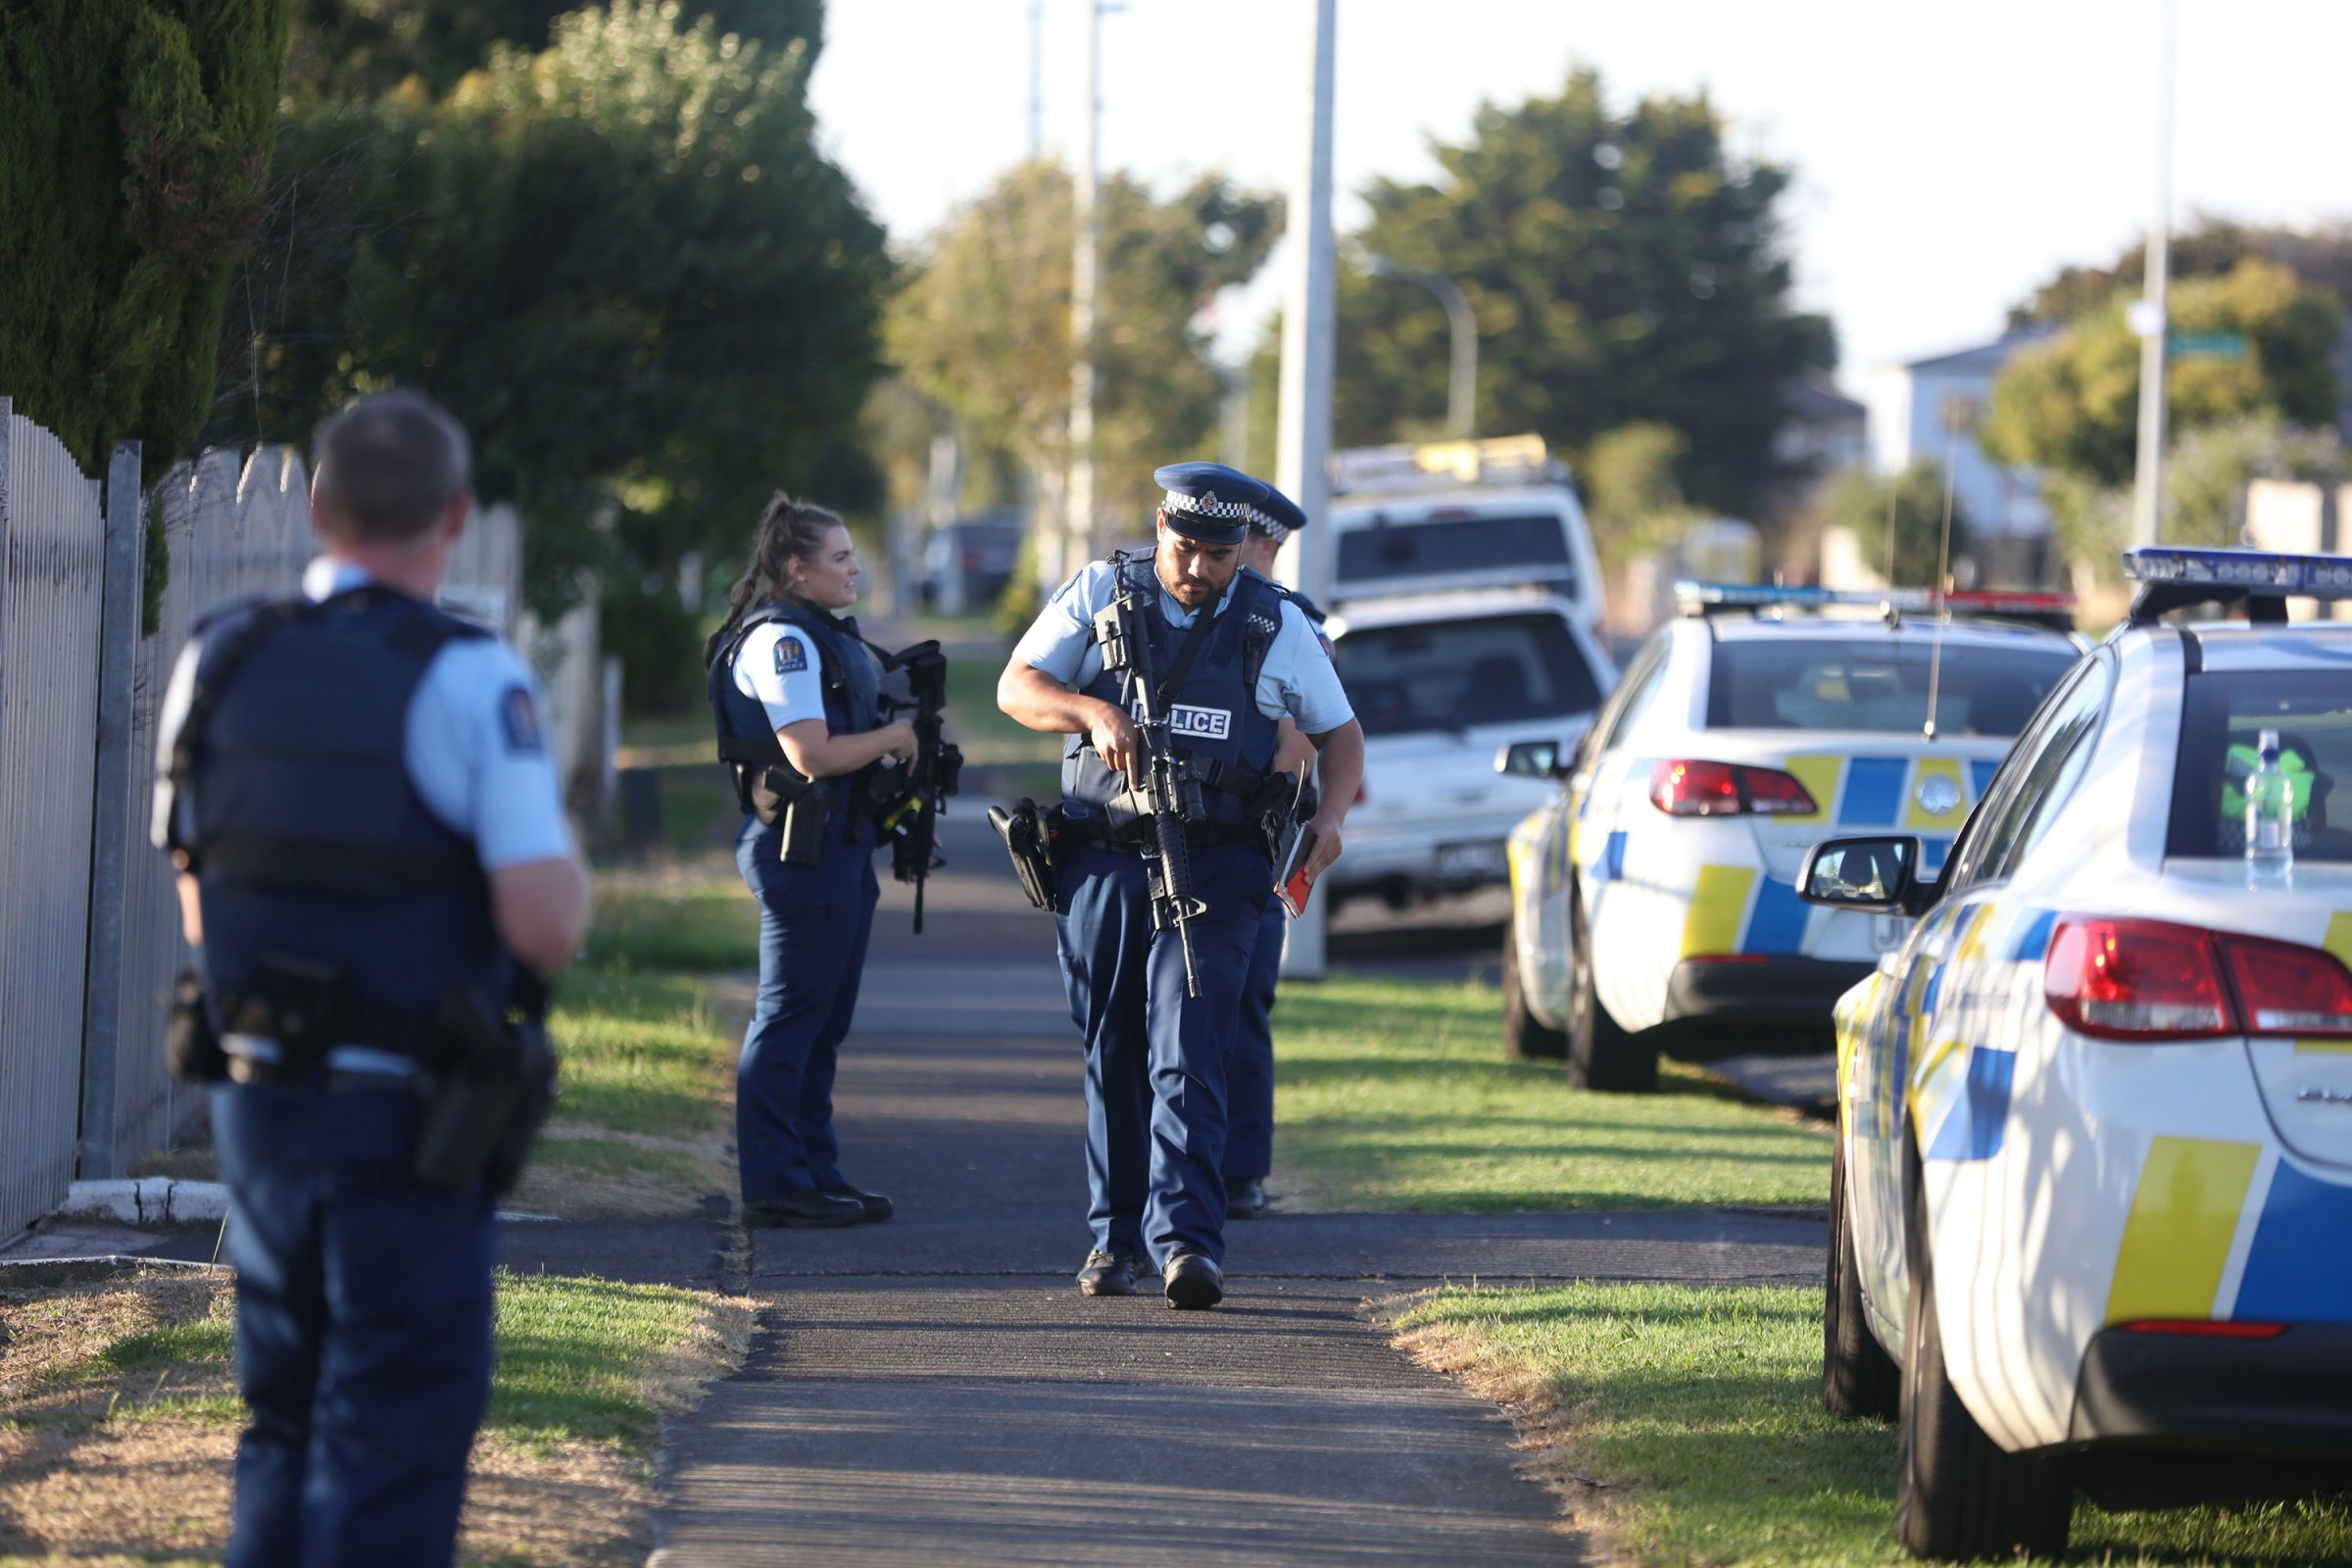 Nz Shooting Footage News: New Zealand Mass Shooting